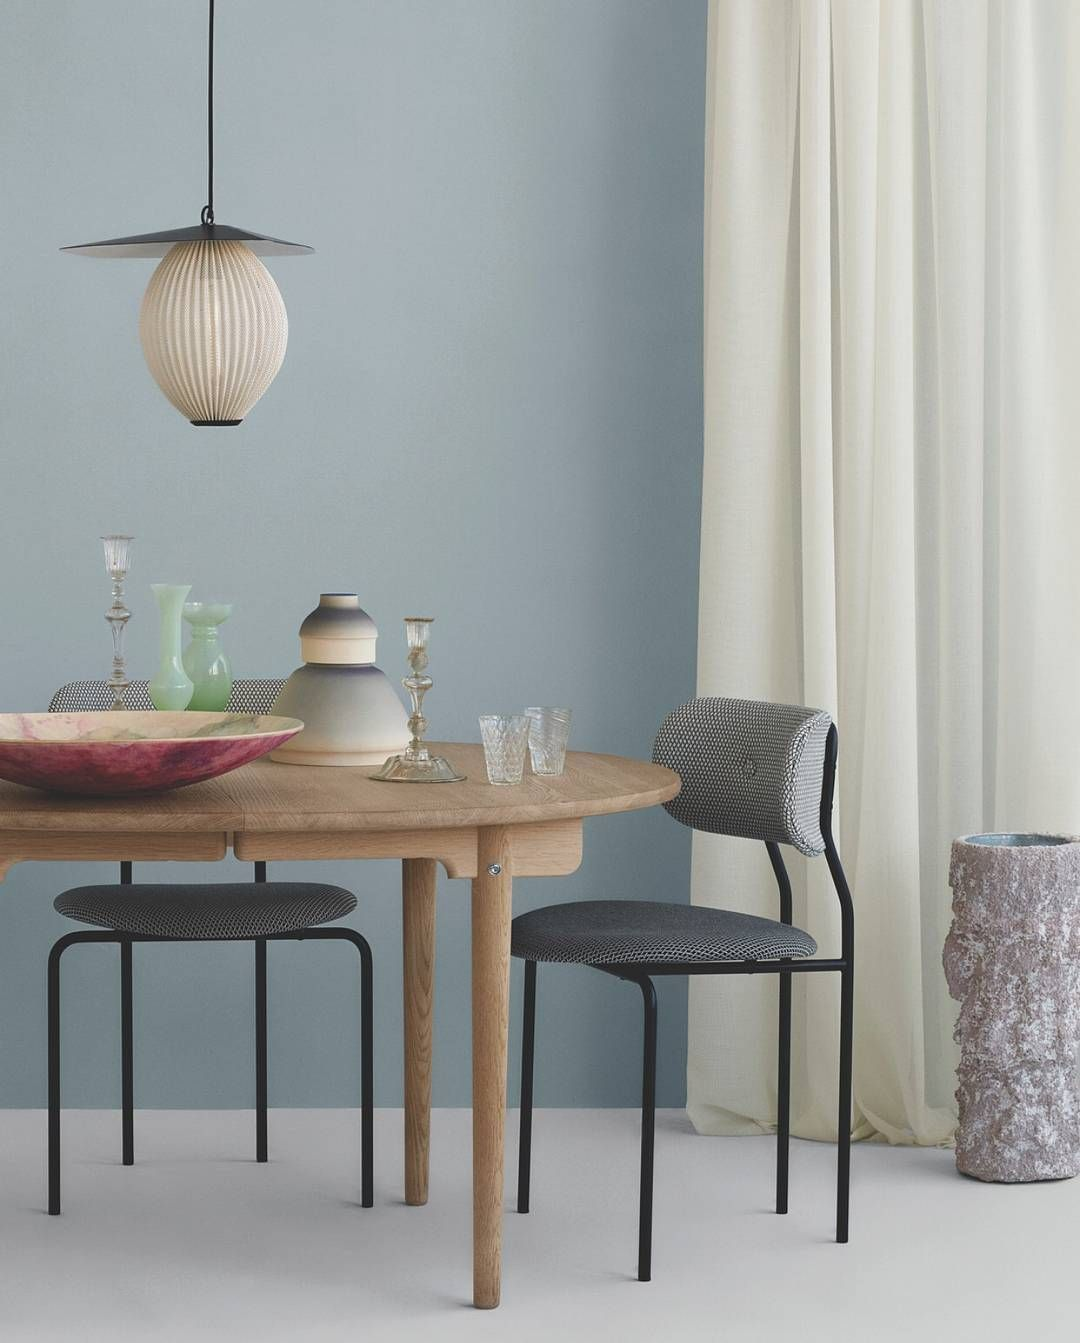 Gubi Coco Chair And Satellite Pendant In Elle Decoration Dk